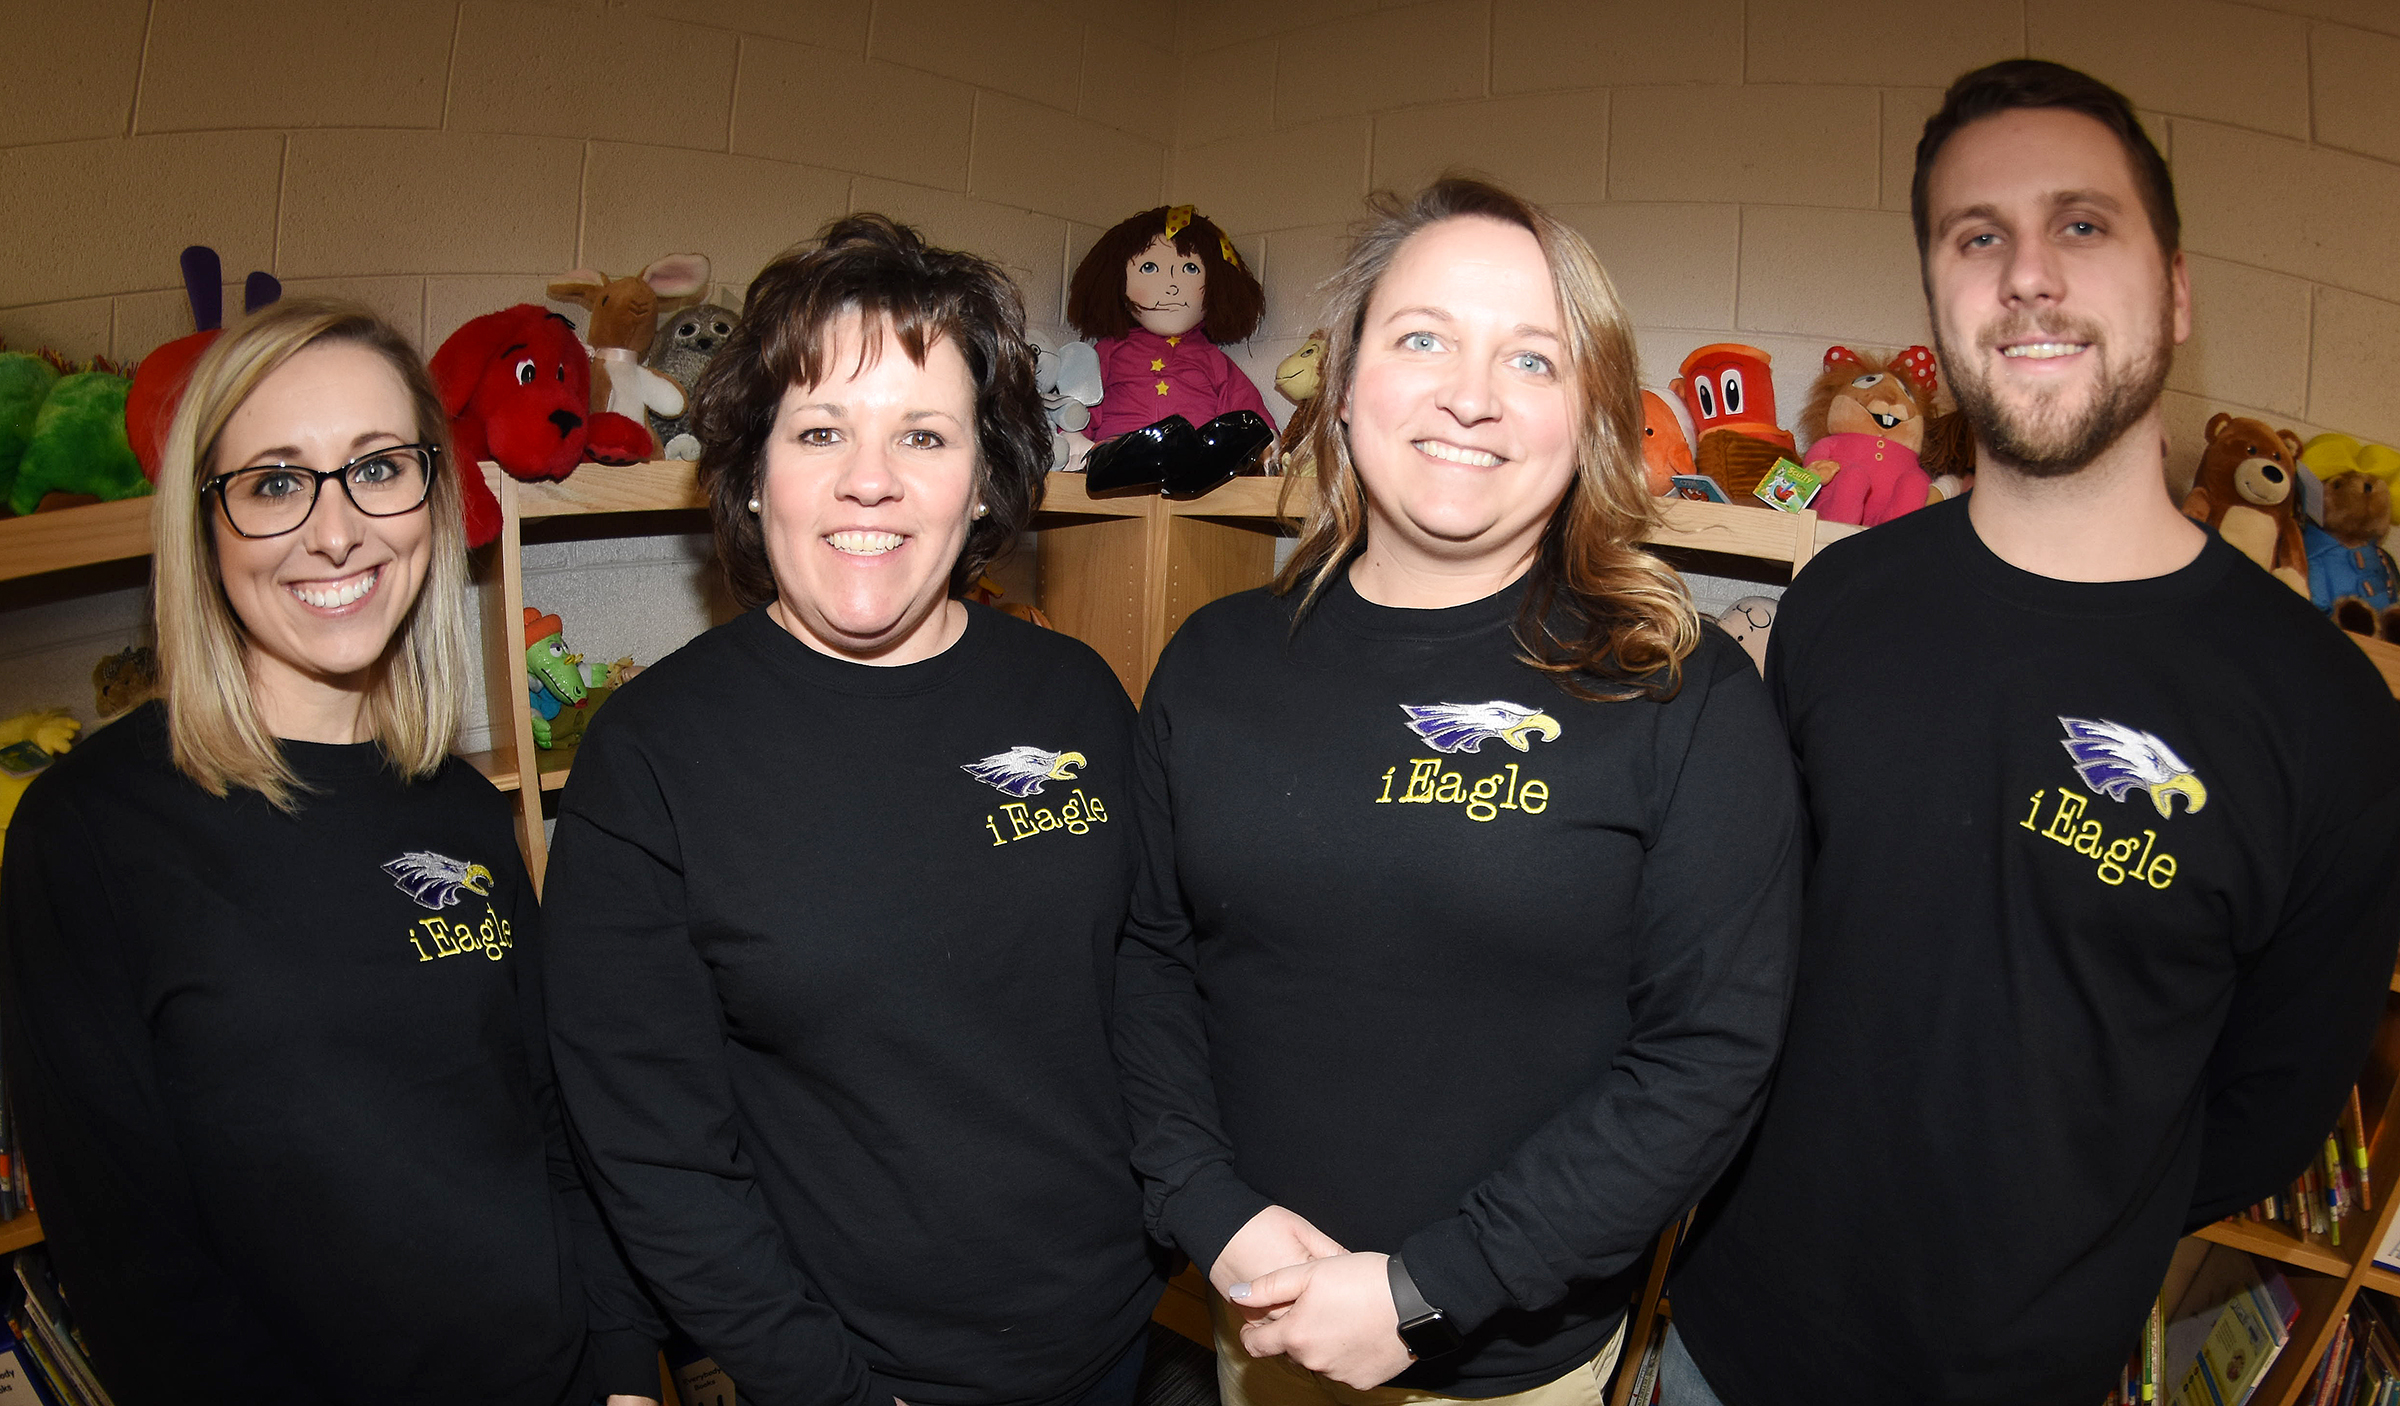 Campbellsville Independent Schools will soon open a new innovation center for students to immerse themselves in hands-on, authentic learning. The Eagle Center of Innovation, also called iEagle, will open in August. Four teachers have been selected to lead classes at iEagle, including, from left, lead teacher Hannah Jones and teachers Tracey Rinehart, Katie Campbell and Tyler Hardy.